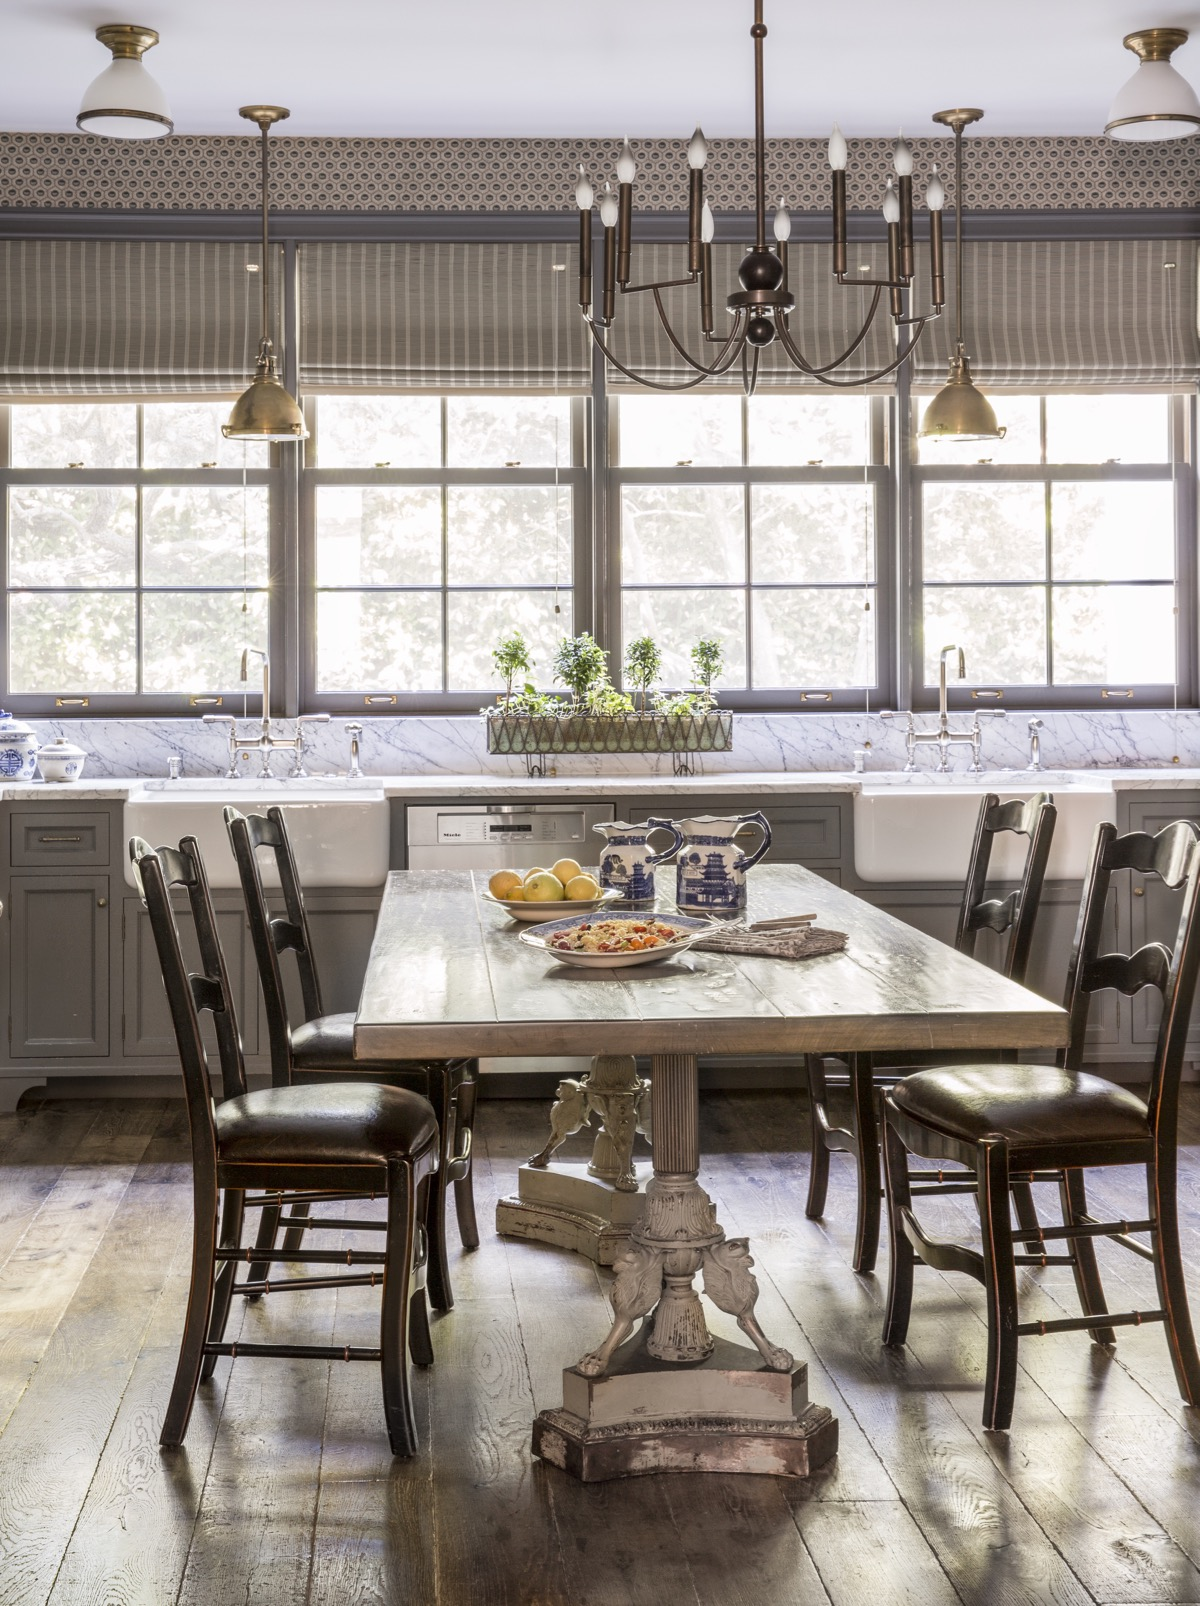 Lage kitchen with wood dining table, hardwood floors, stone countertops, and large windows looking out to green yard..